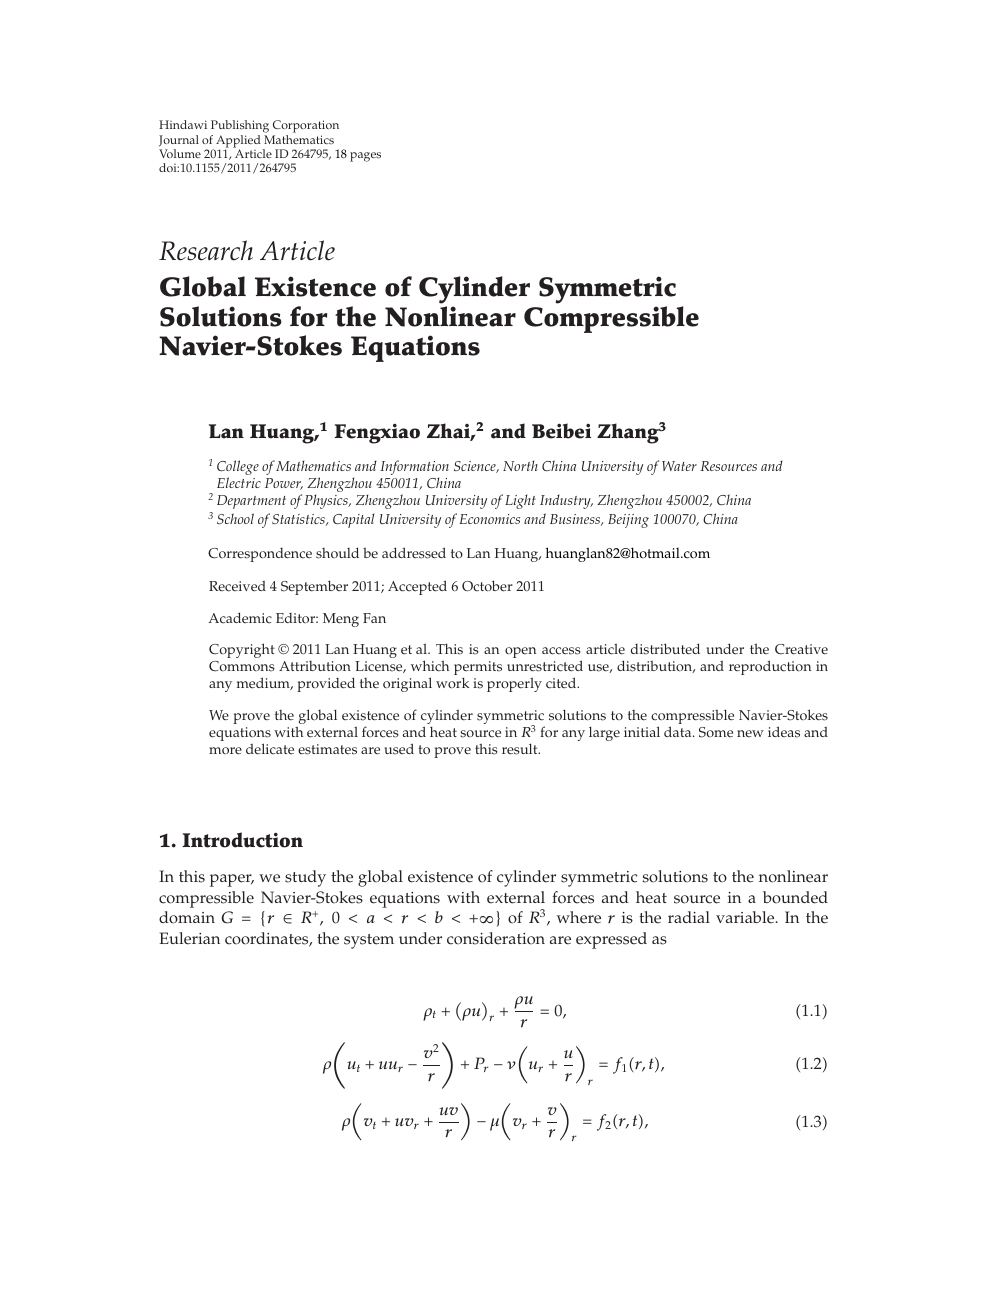 Global Existence of Cylinder Symmetric Solutions for the Nonlinear